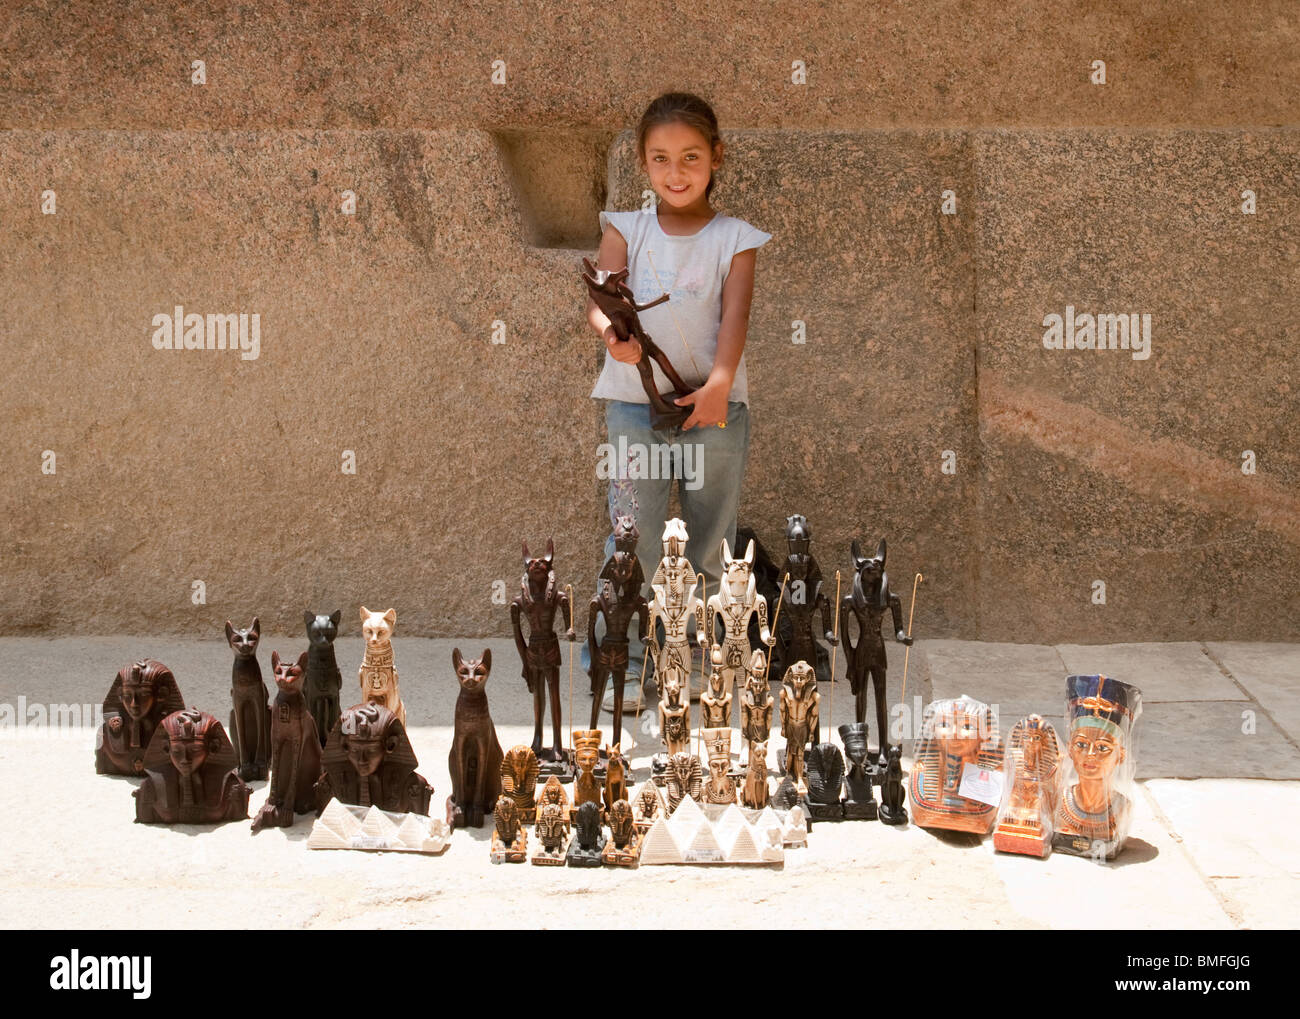 A  young Egyptian muslim girl selling tourist souvenirs, Giza, Cairo, Egypt - Stock Image